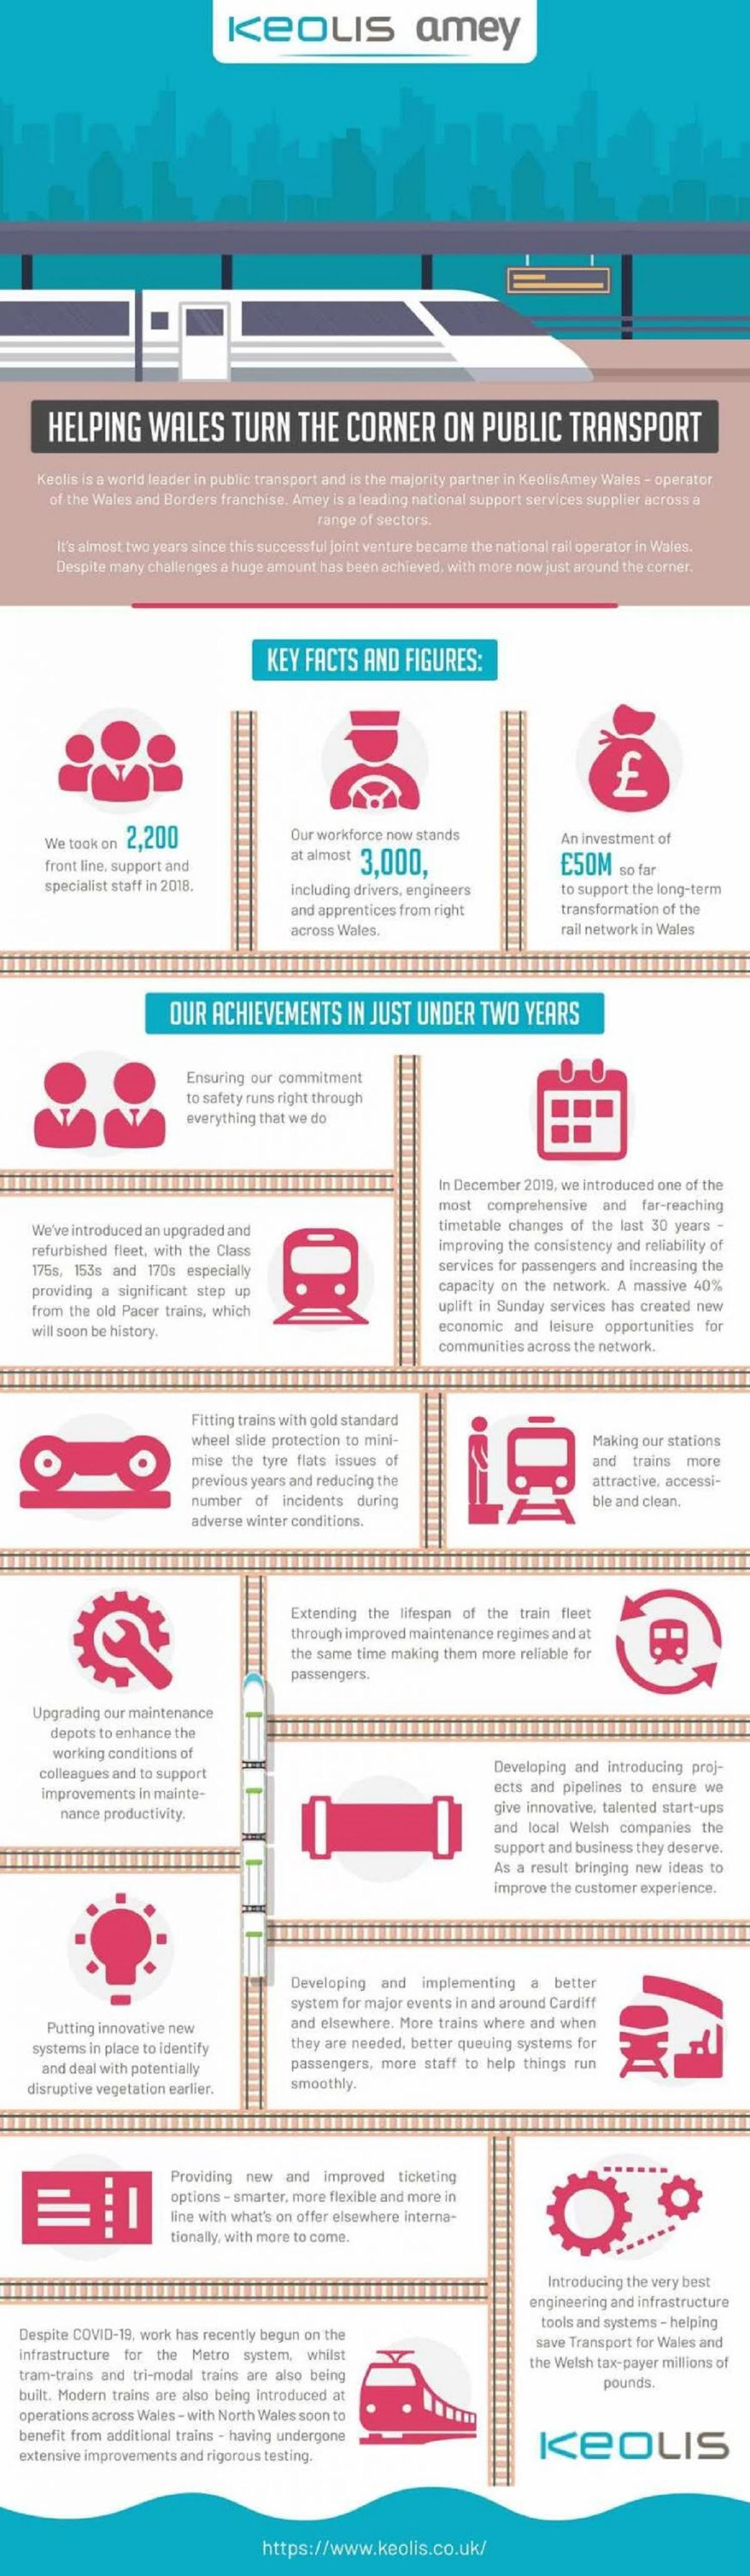 keolisamey-helping-wales-turn-the-corner-on-public-transport-infographic